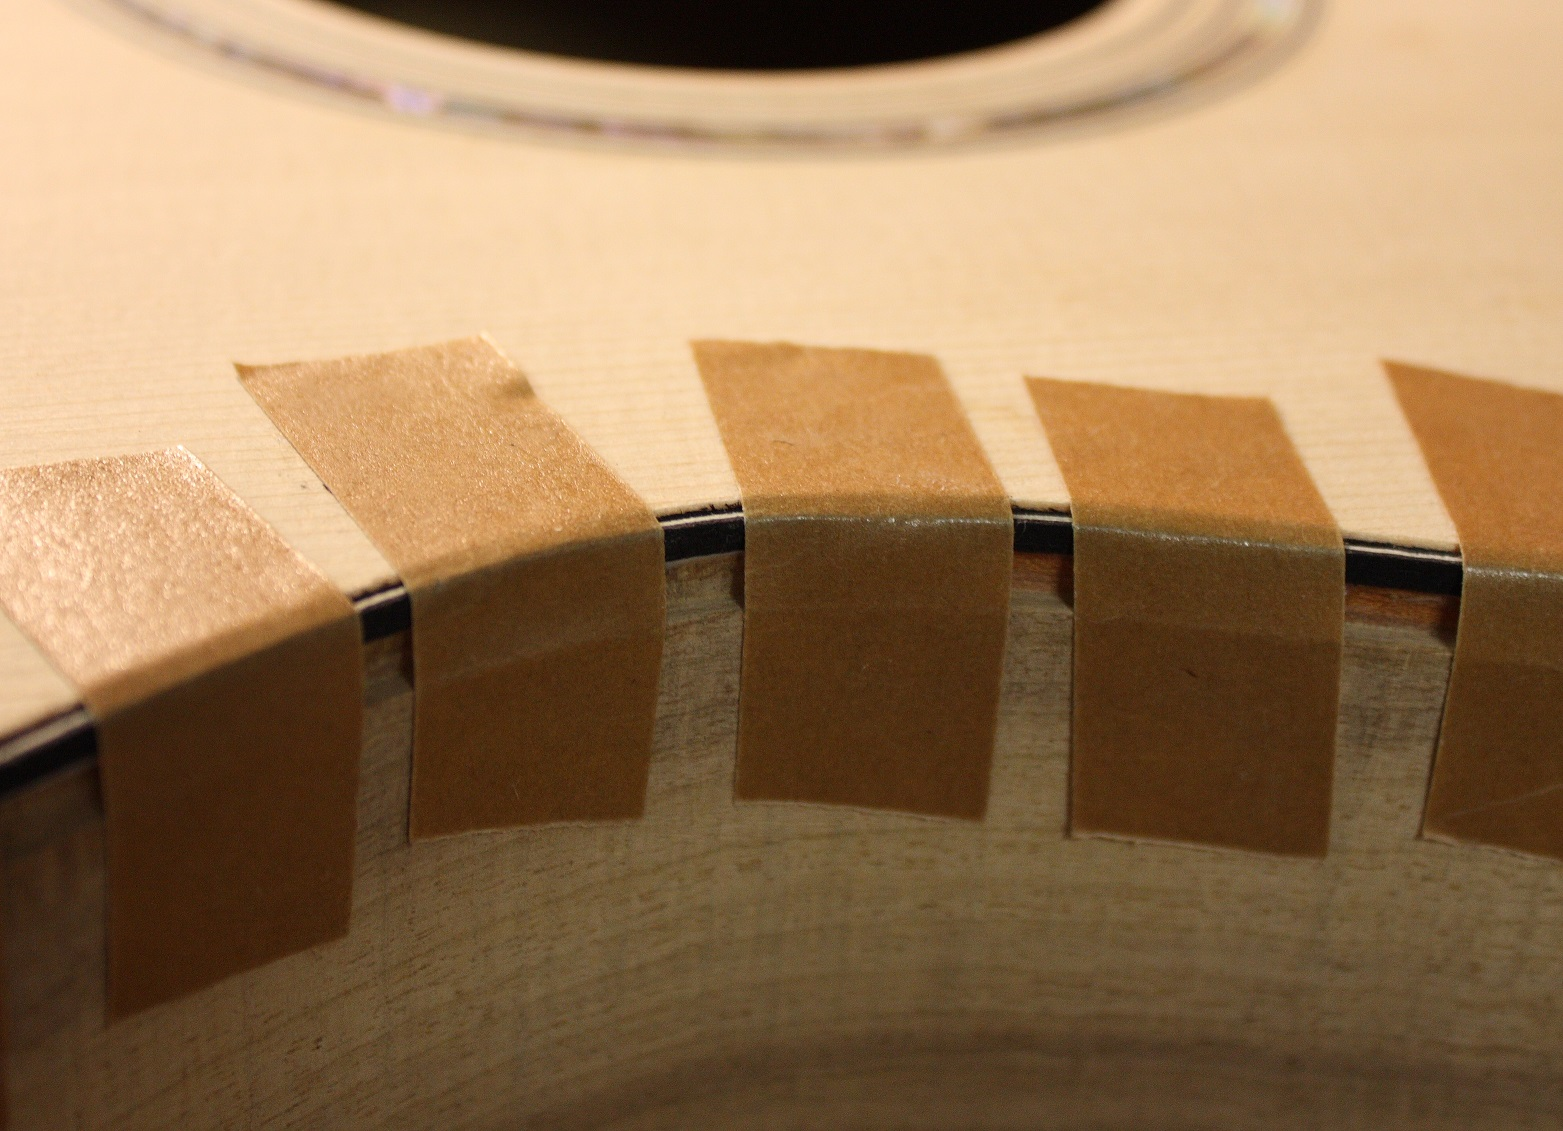 Binding tape is used to hold the purfling in the channel until it dries.